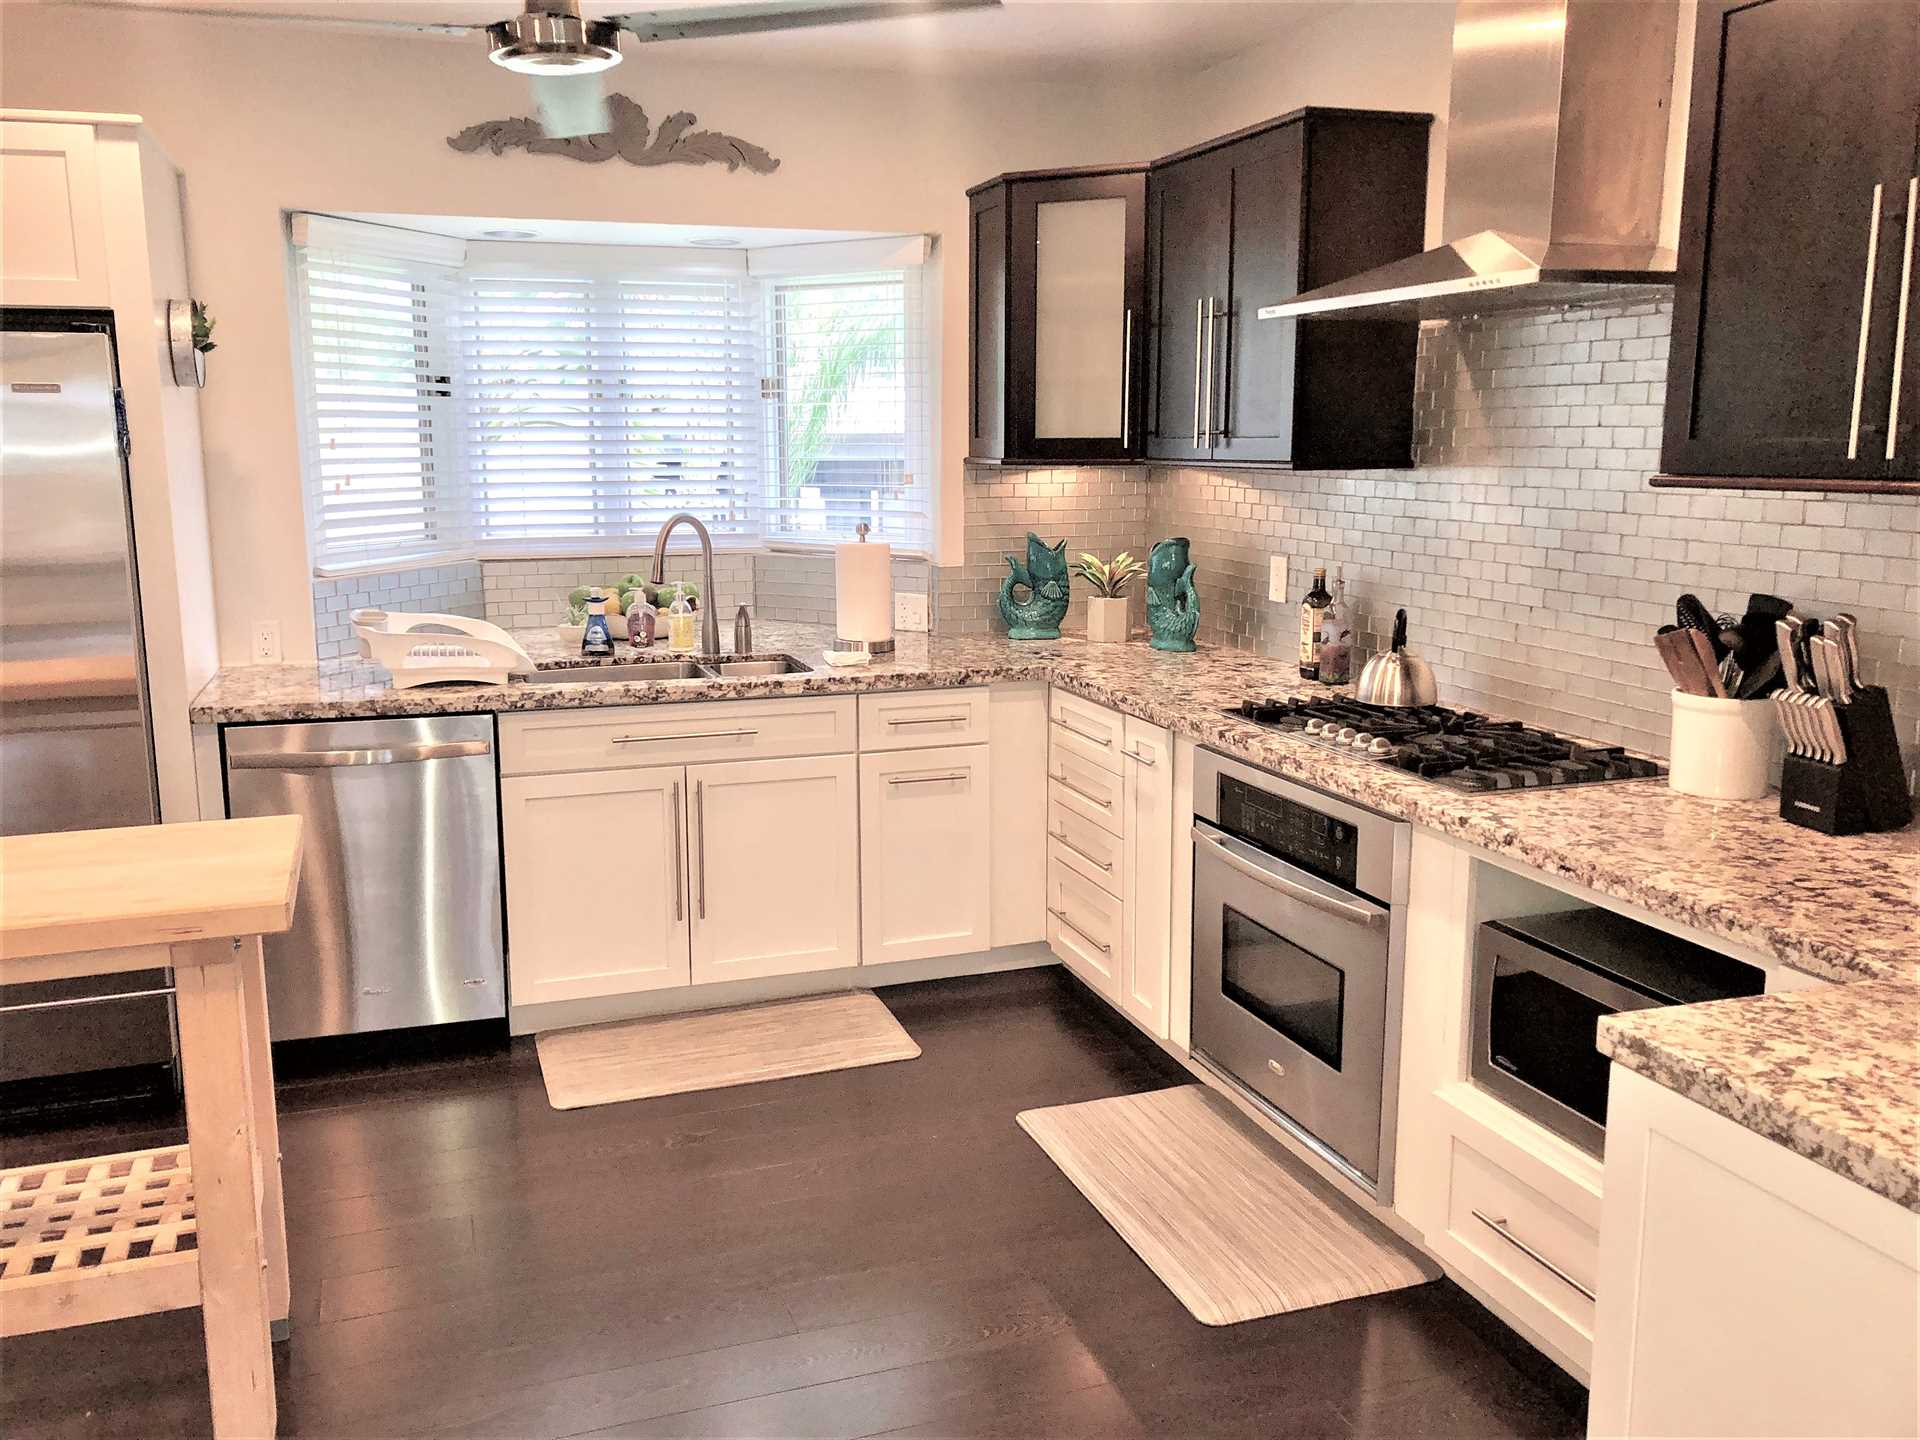 All stainless appliances and a natural gas stove top/oven ma